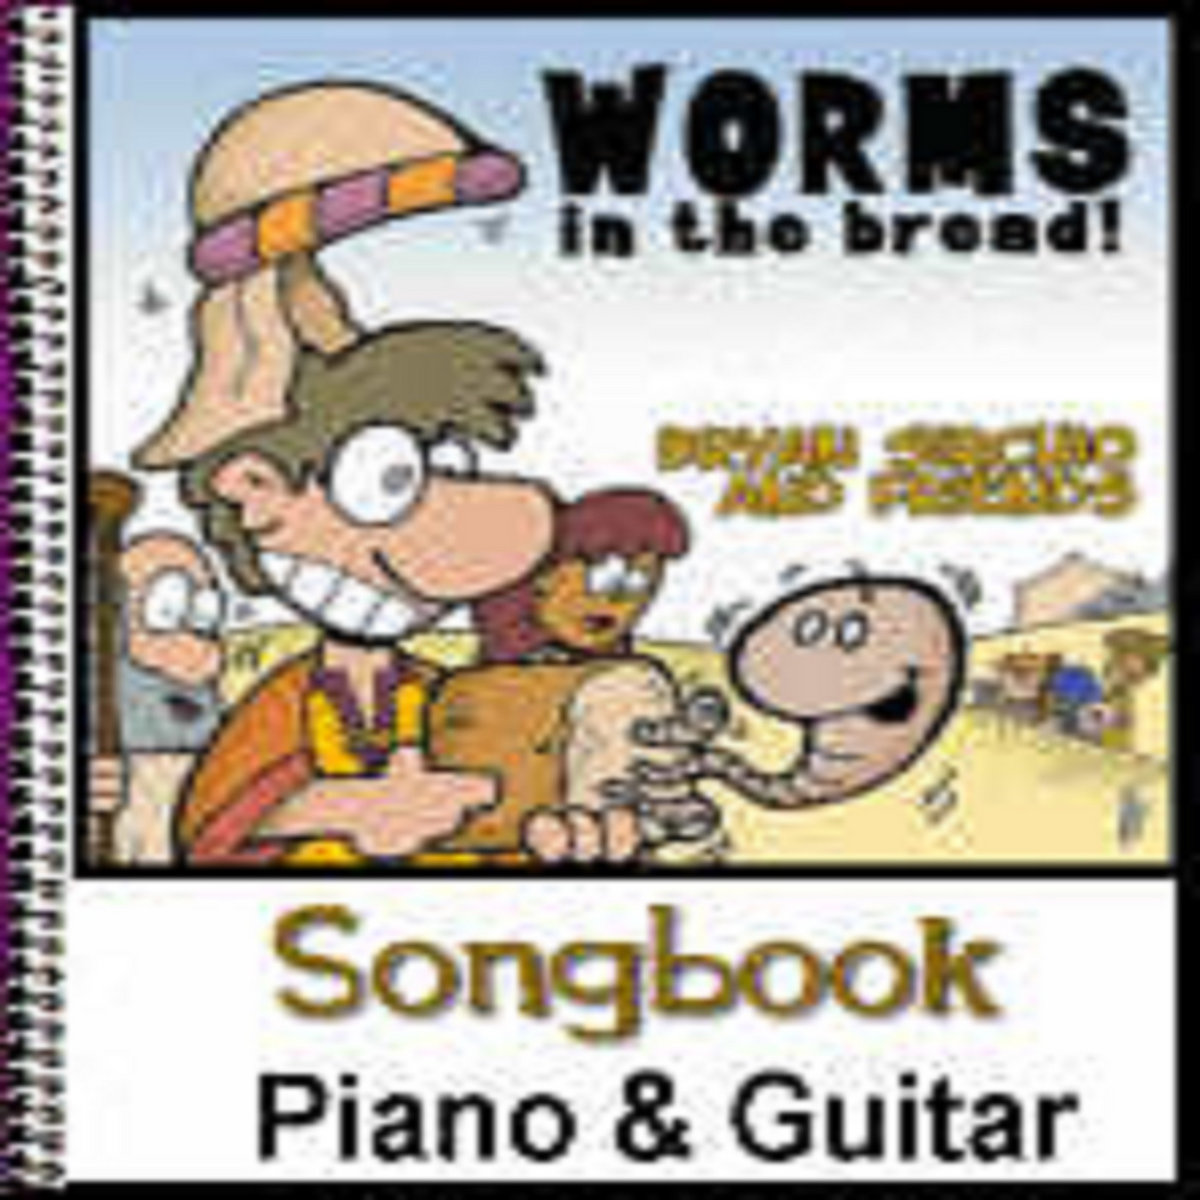 Worms In The Bread Mp3 For This One Song And Sheet Music And